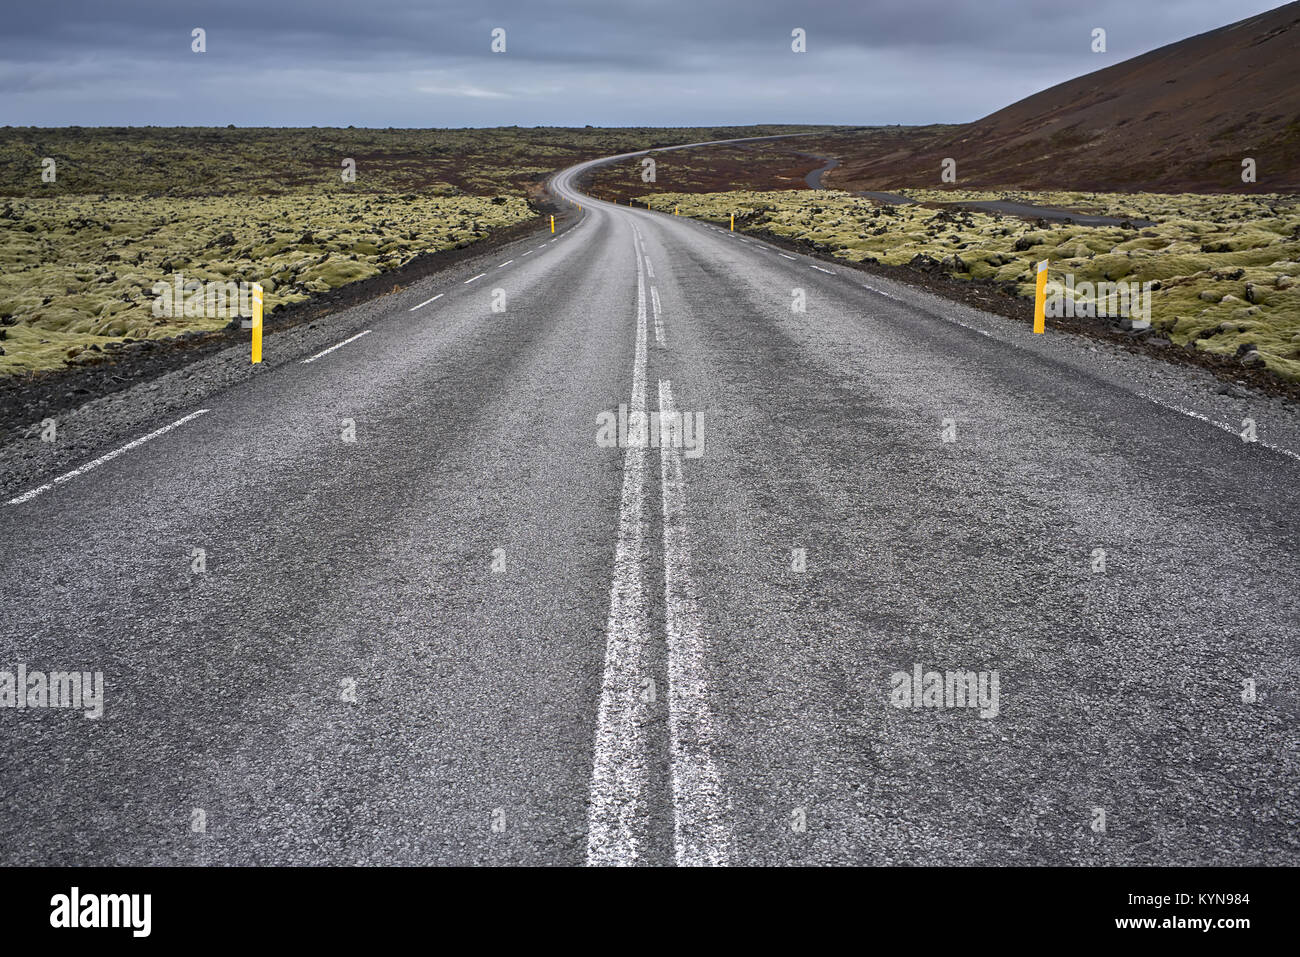 Icelandic landscape with country roadway - Stock Image